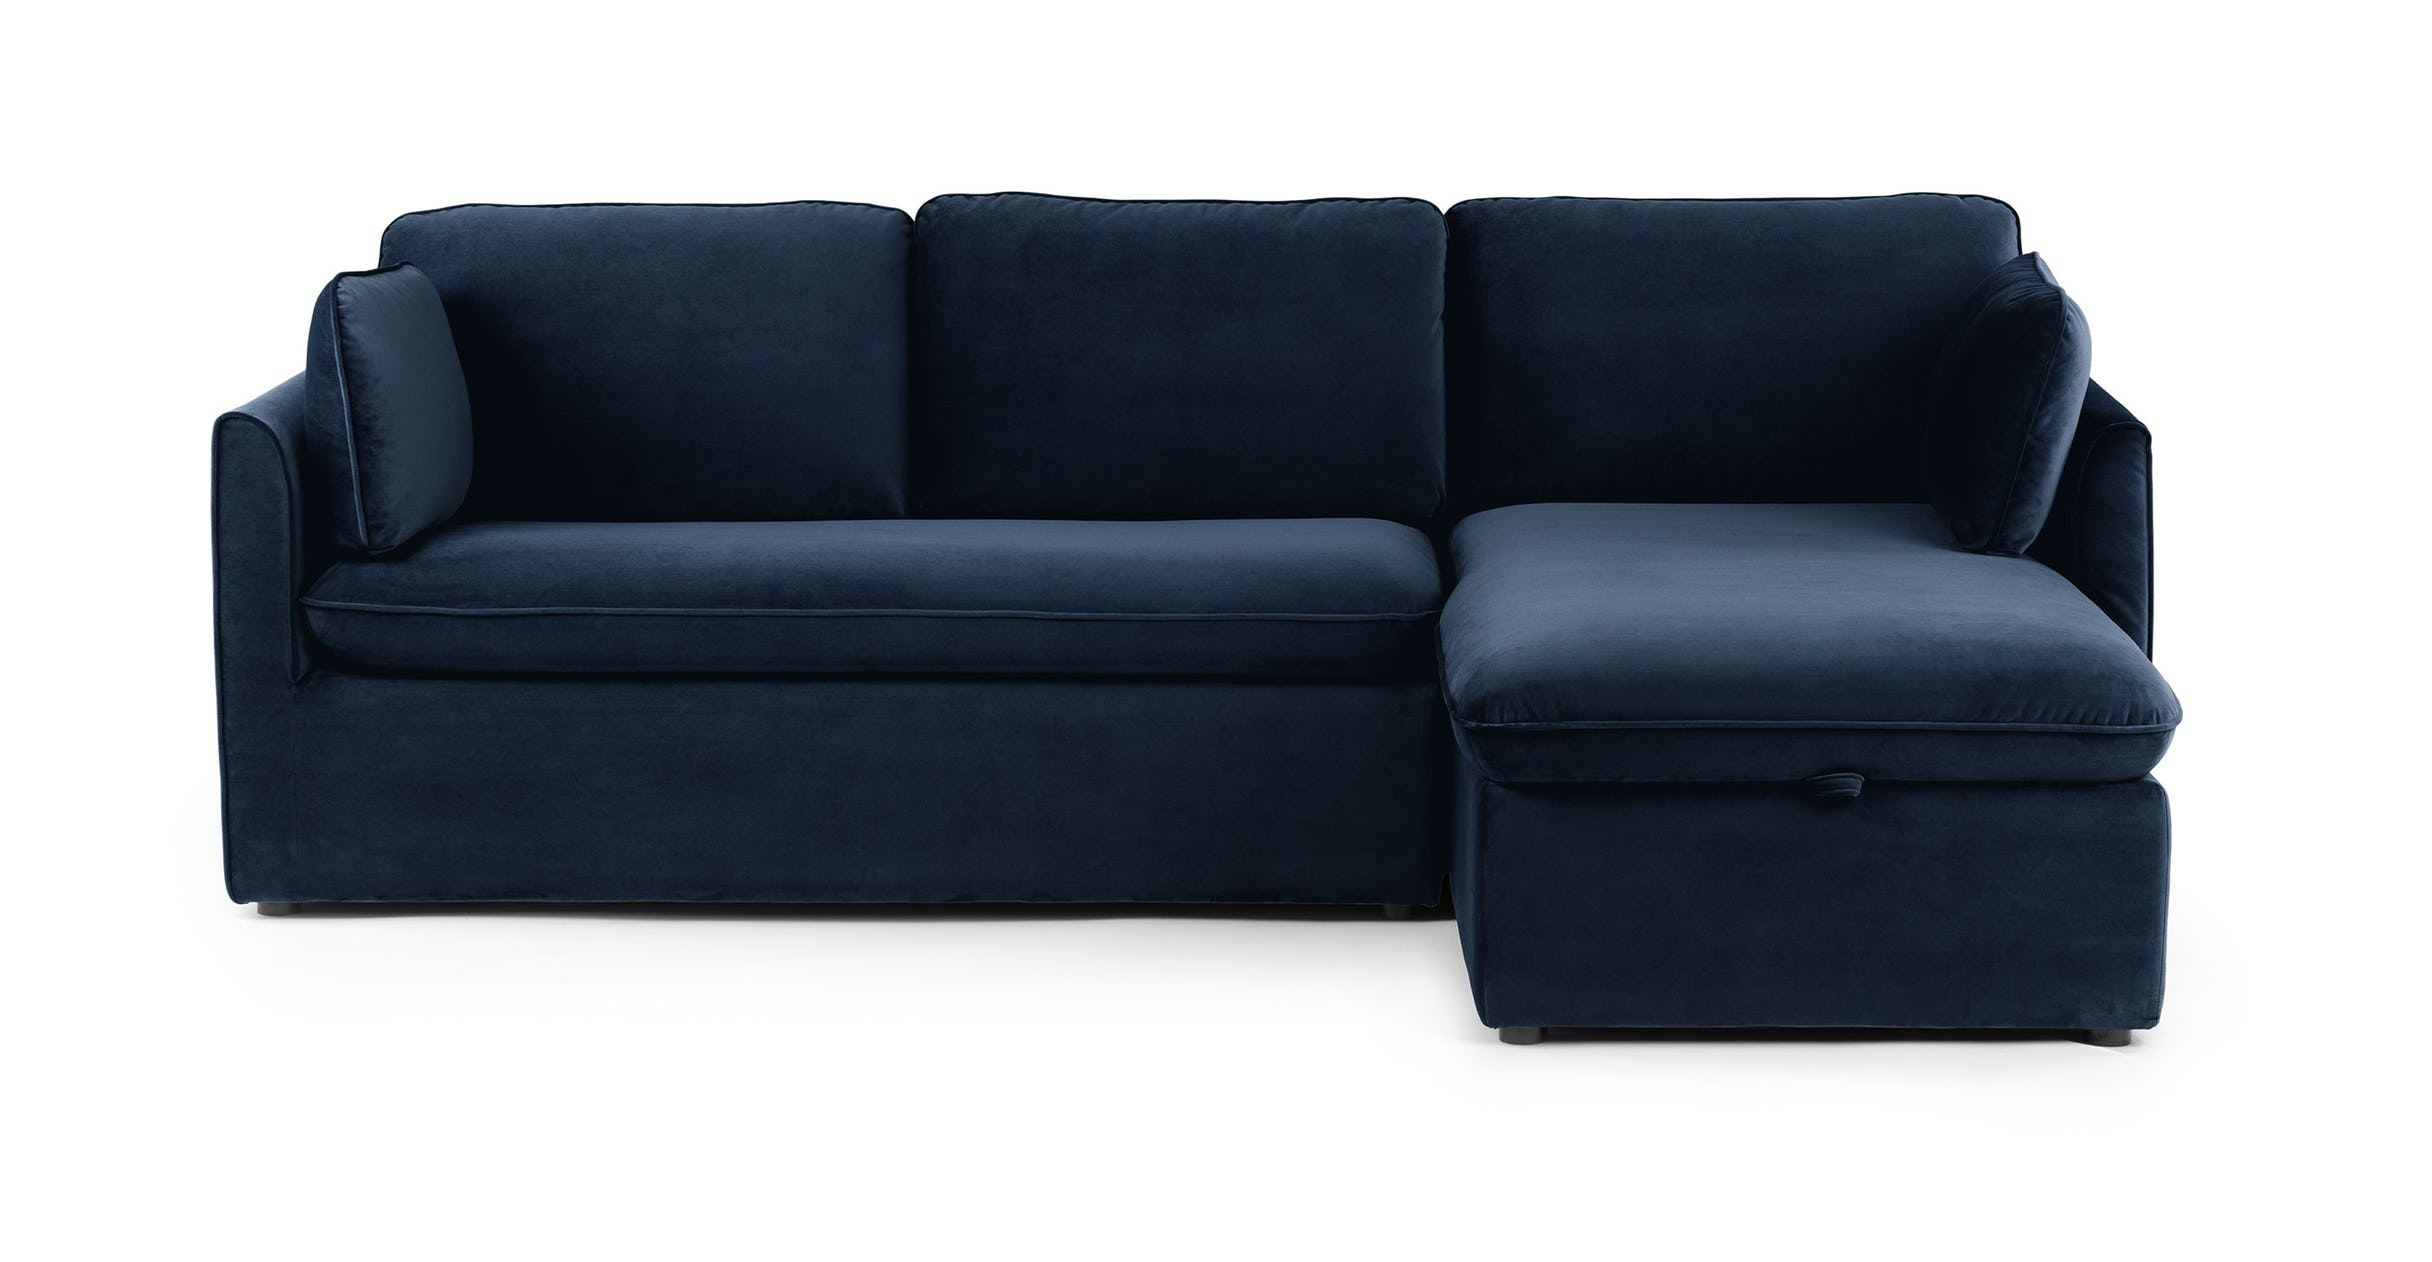 Excellent Blue Velvet Sofa Bed Right Sectional Metal Legs Article Uwap Interior Chair Design Uwaporg